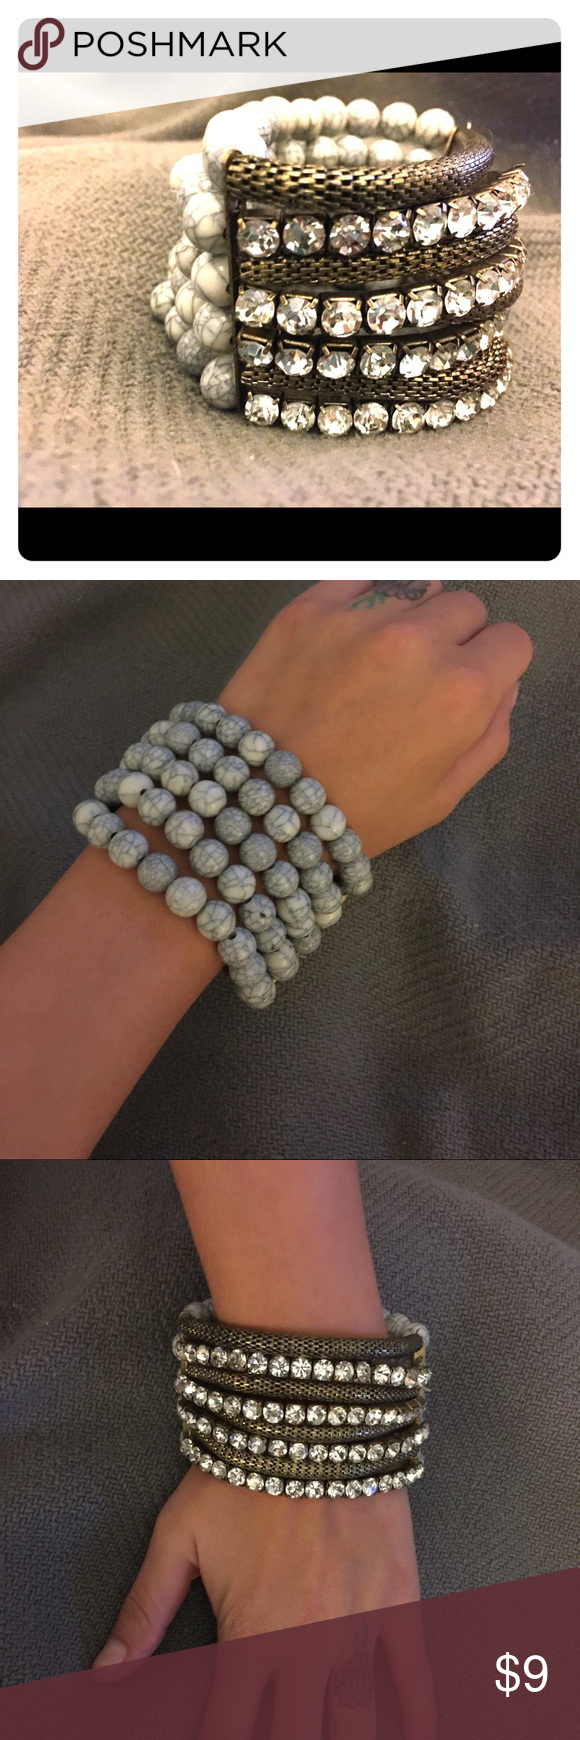 💎Perfect BOHO chic stretchy bracelet💎 This bracelet has very stretchy string that allows any size wrist to fit comfortably! Worn once! Would be the perfect item to spruce up your outfit without being to gaudy!! Mossimo Supply Co. Jewelry Bracelets